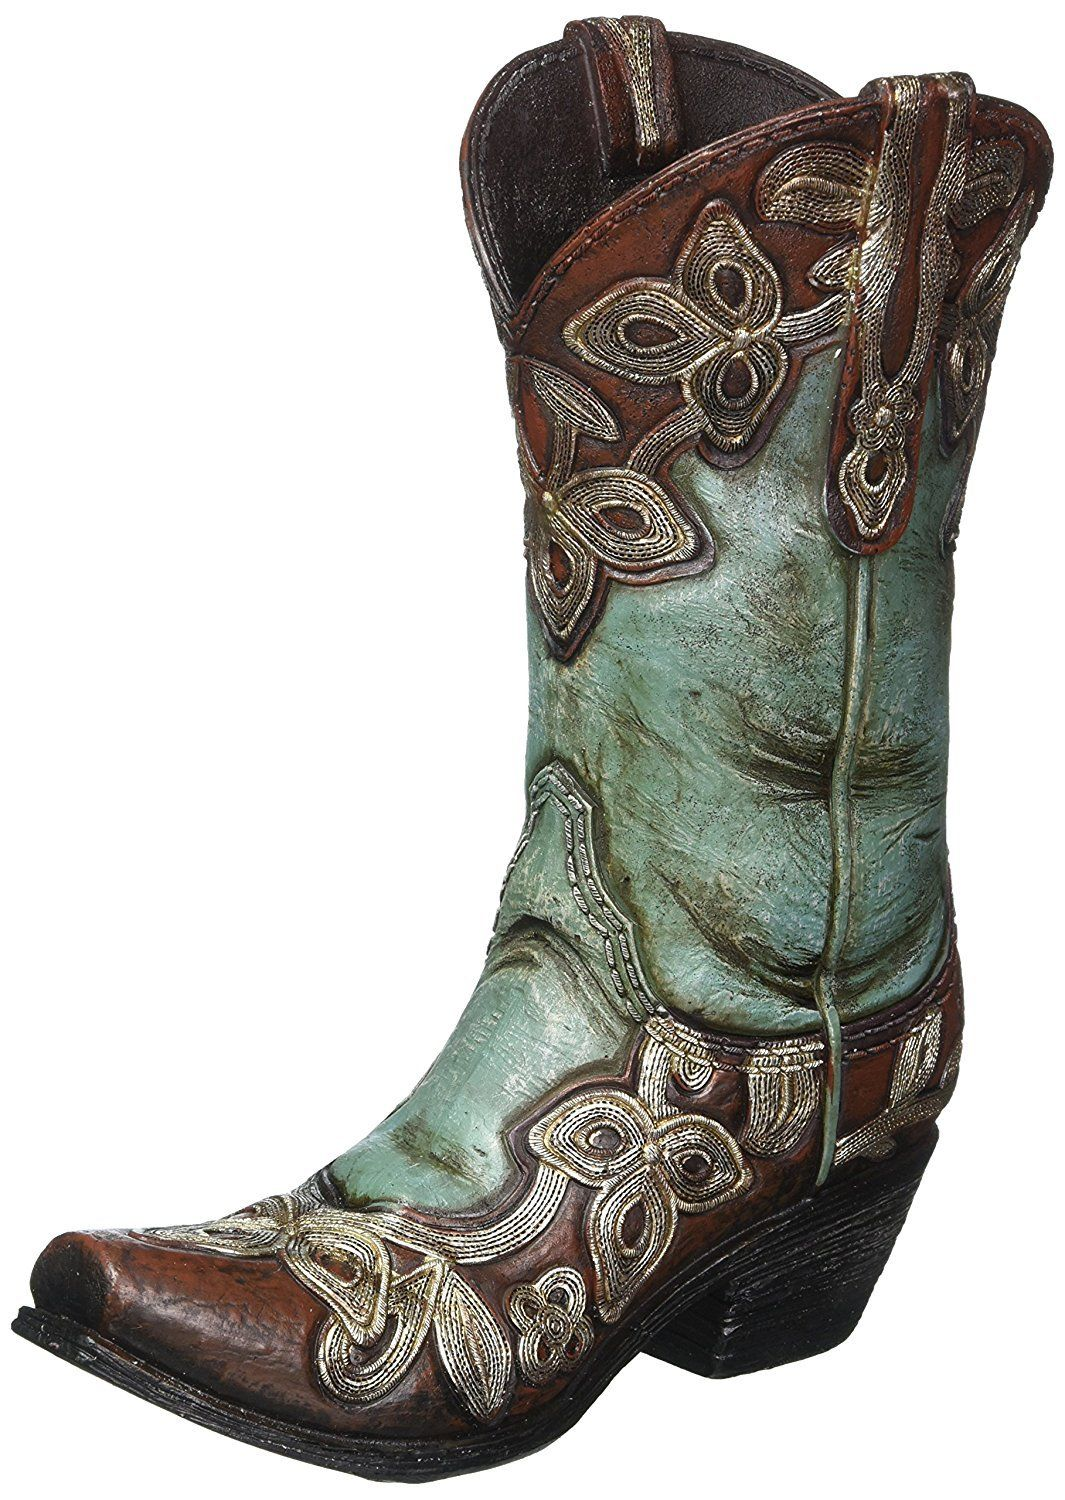 Turquoise Cowgirl Boot Vase in 2020 Boots, Cowgirl boots